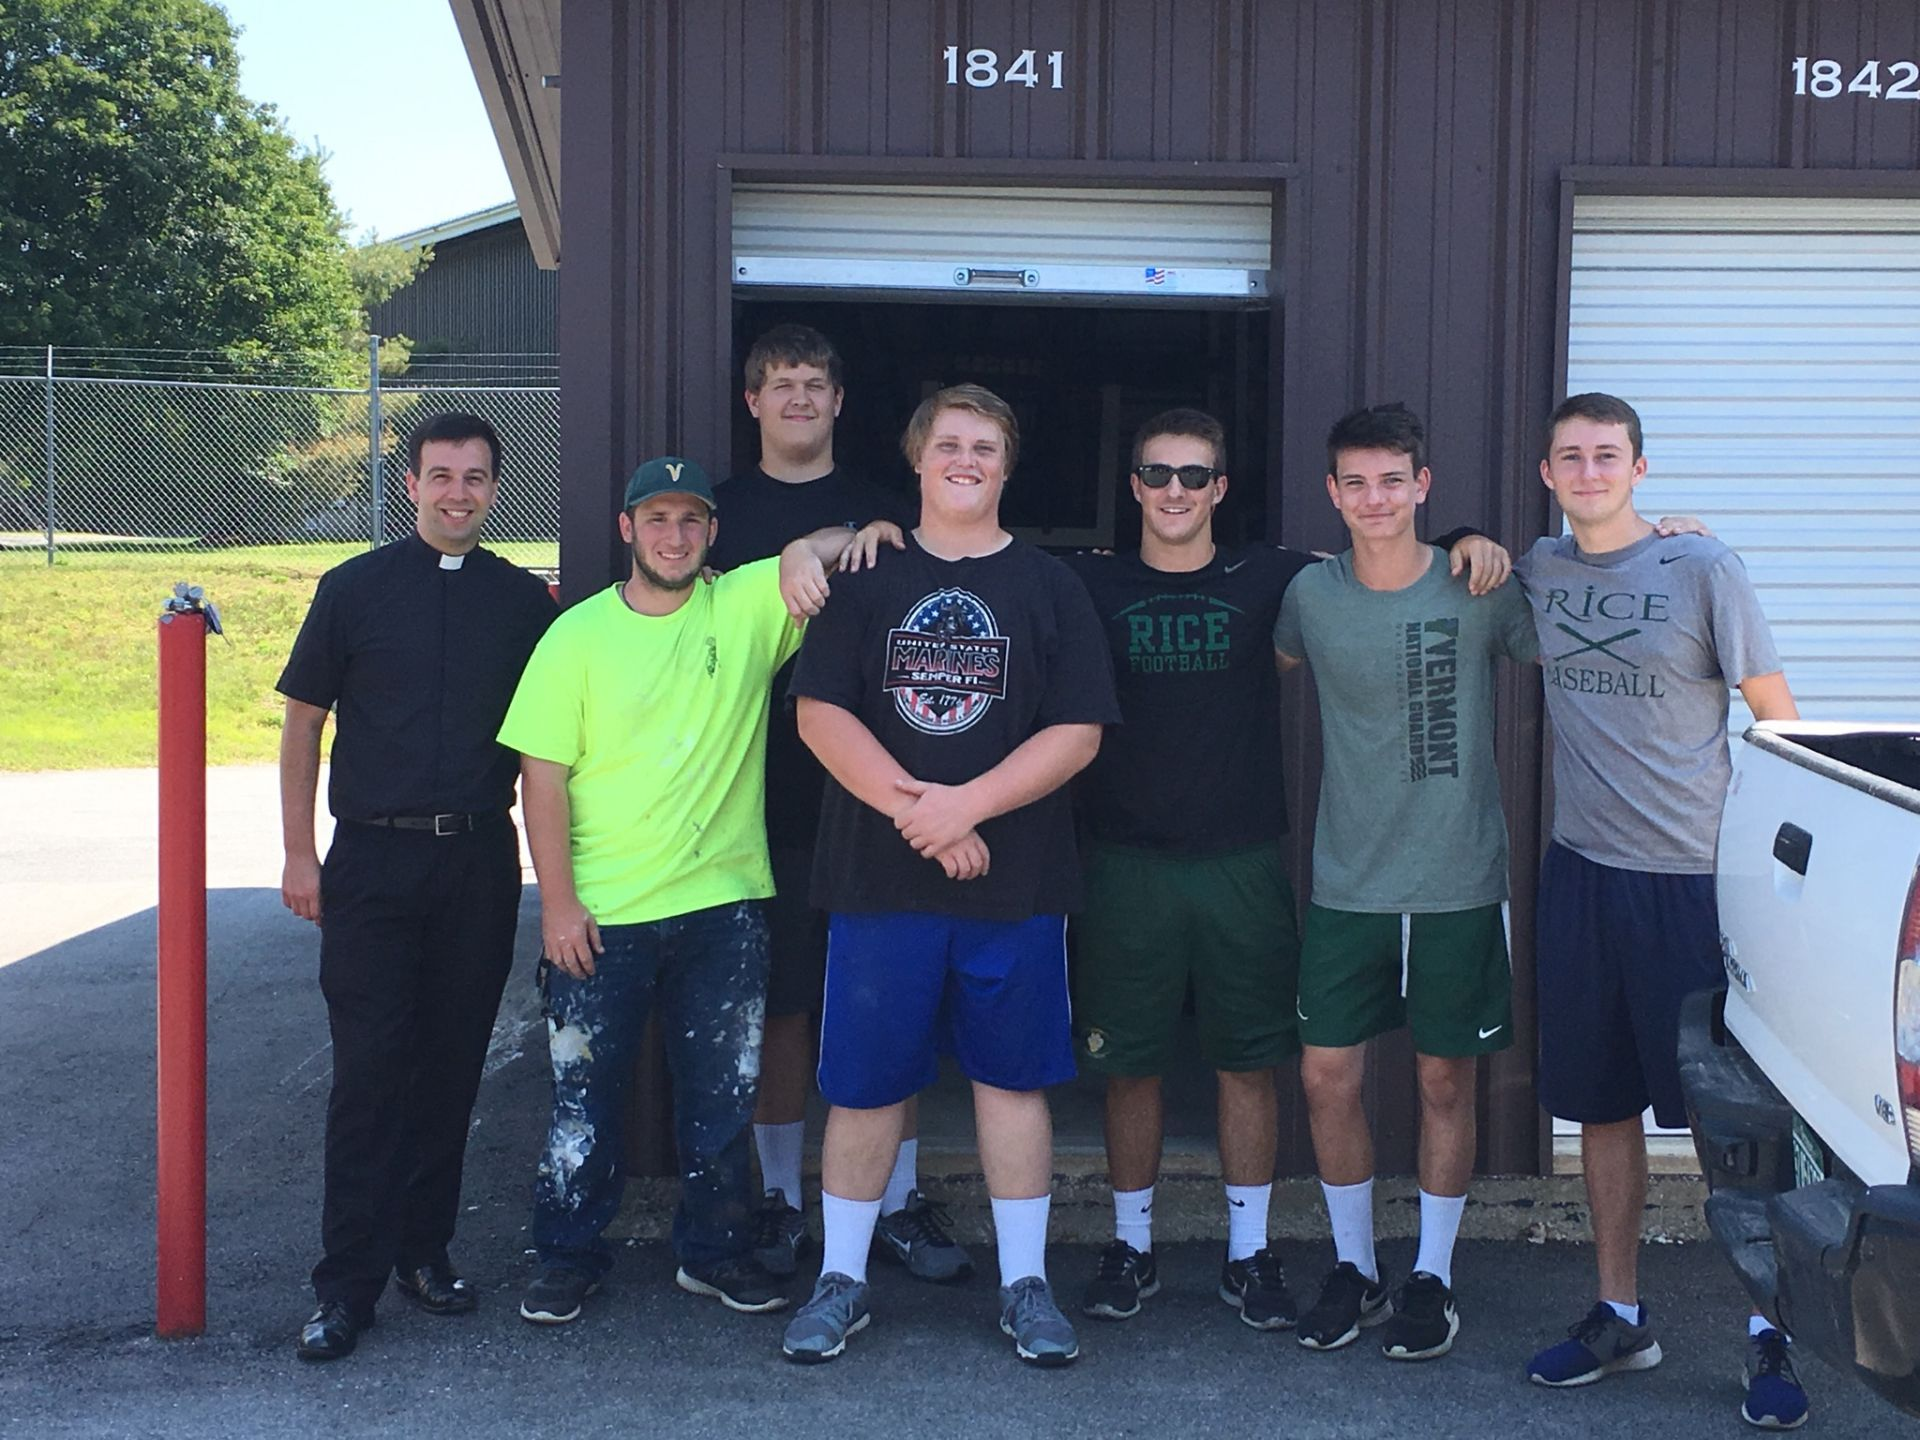 Members of the football team volunteered to help move a young community member out of her apartment